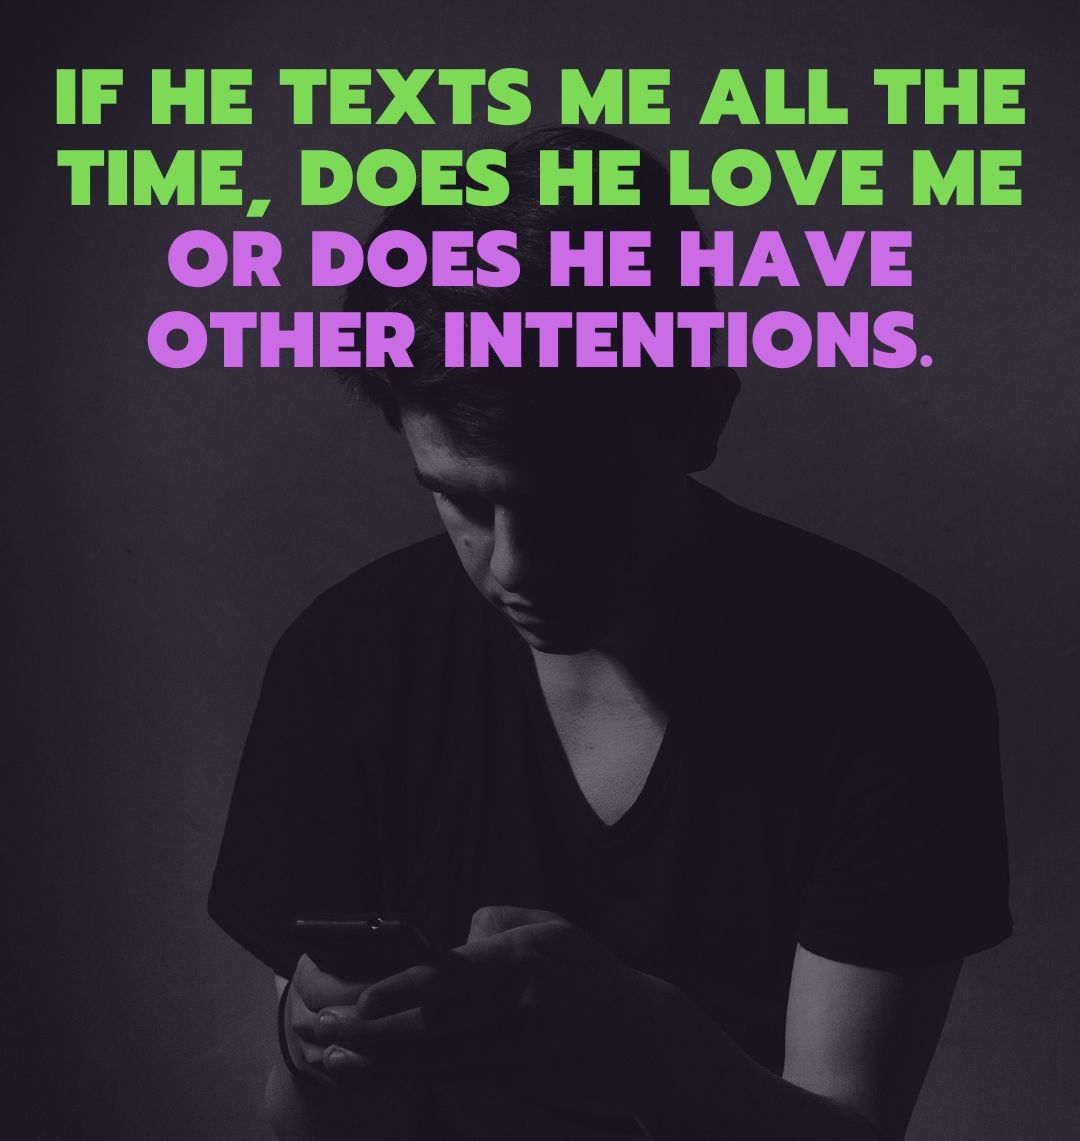 If he texts me all the time, does he love me or does he have other intentions.